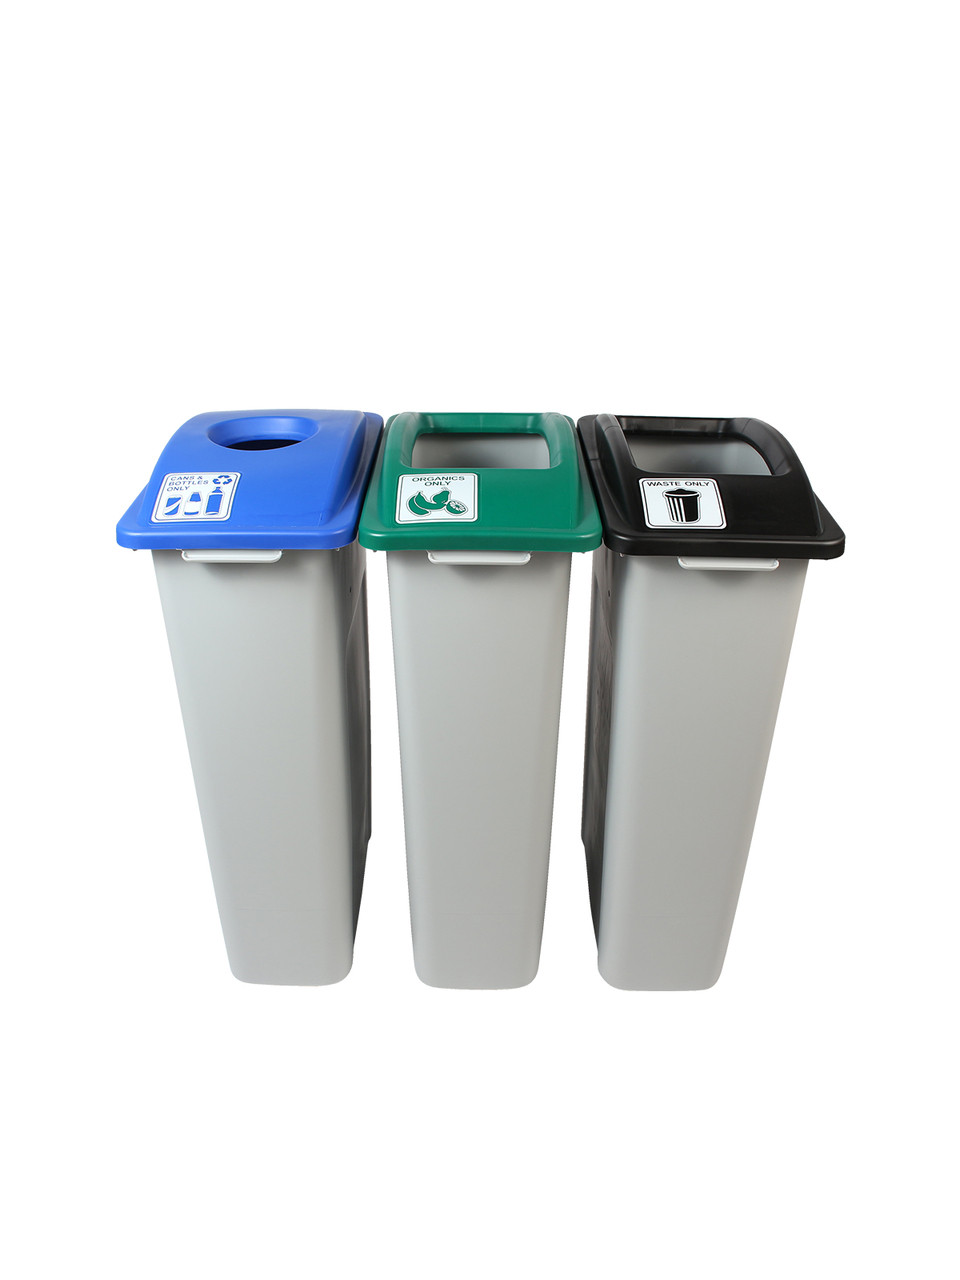 69 Gallon Simple Sort Skinny Recycle Bin Center 8105055-144 (Cans, Organics, Waste)